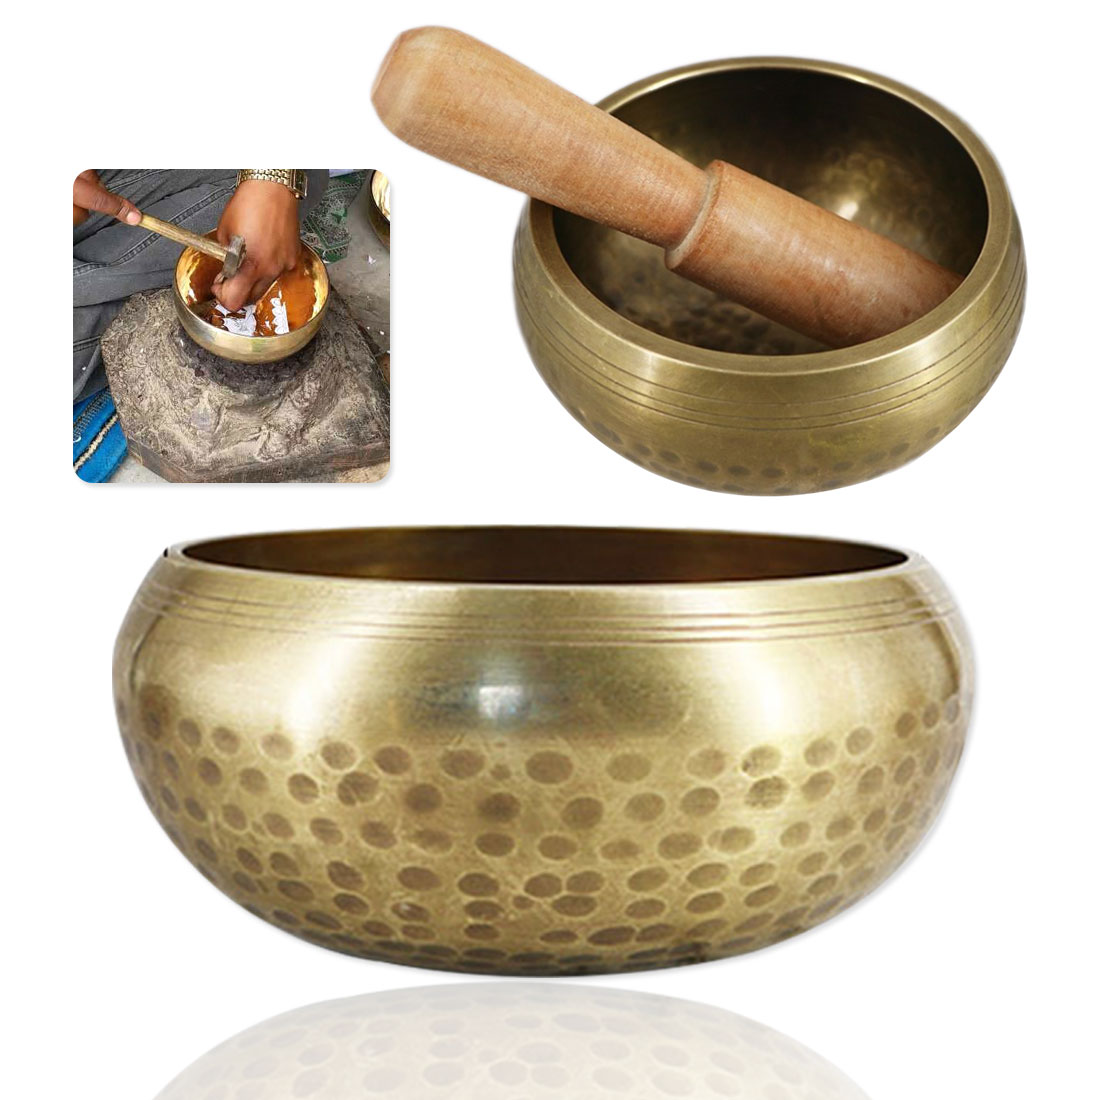 Tibetan Bowl Copper Buddhism Singing Bowls Handmade Decorative-wall-dishes For Meditation Yoga Buddhism Gifts Home Decor Crafts